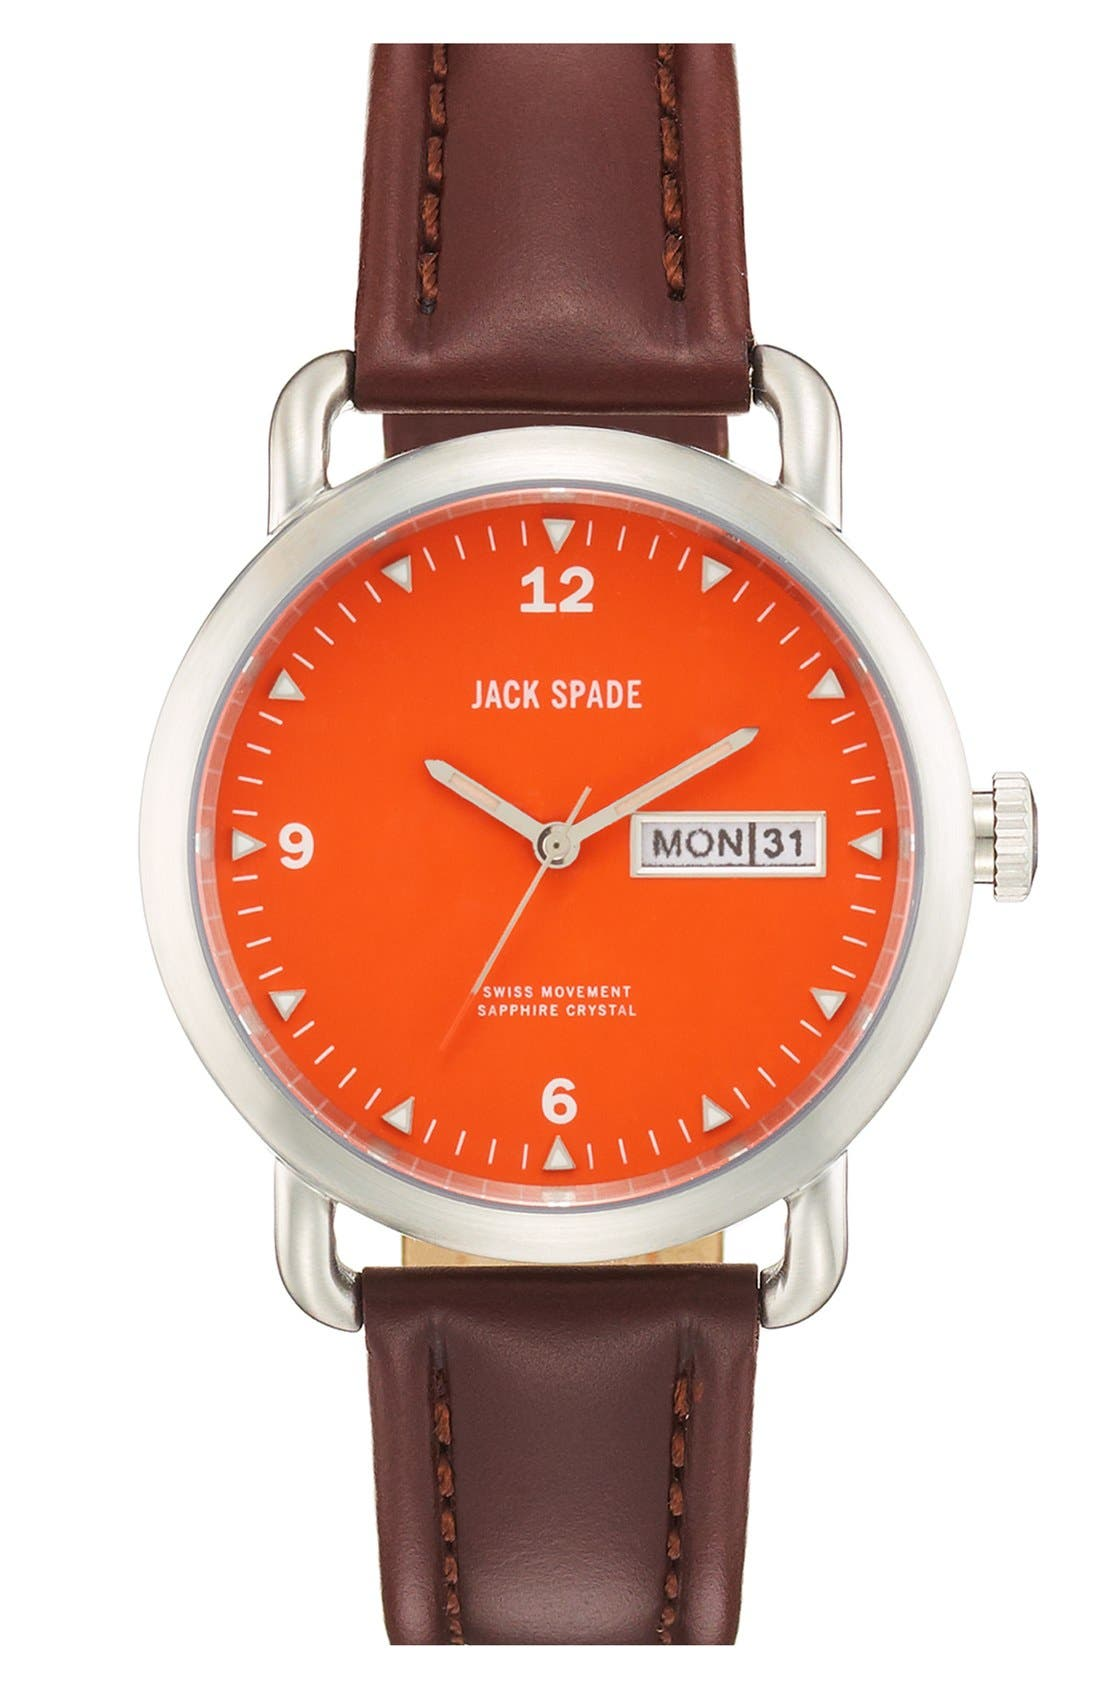 JACK SPADE Classic Military - Stillwell Round Watch, 38mm